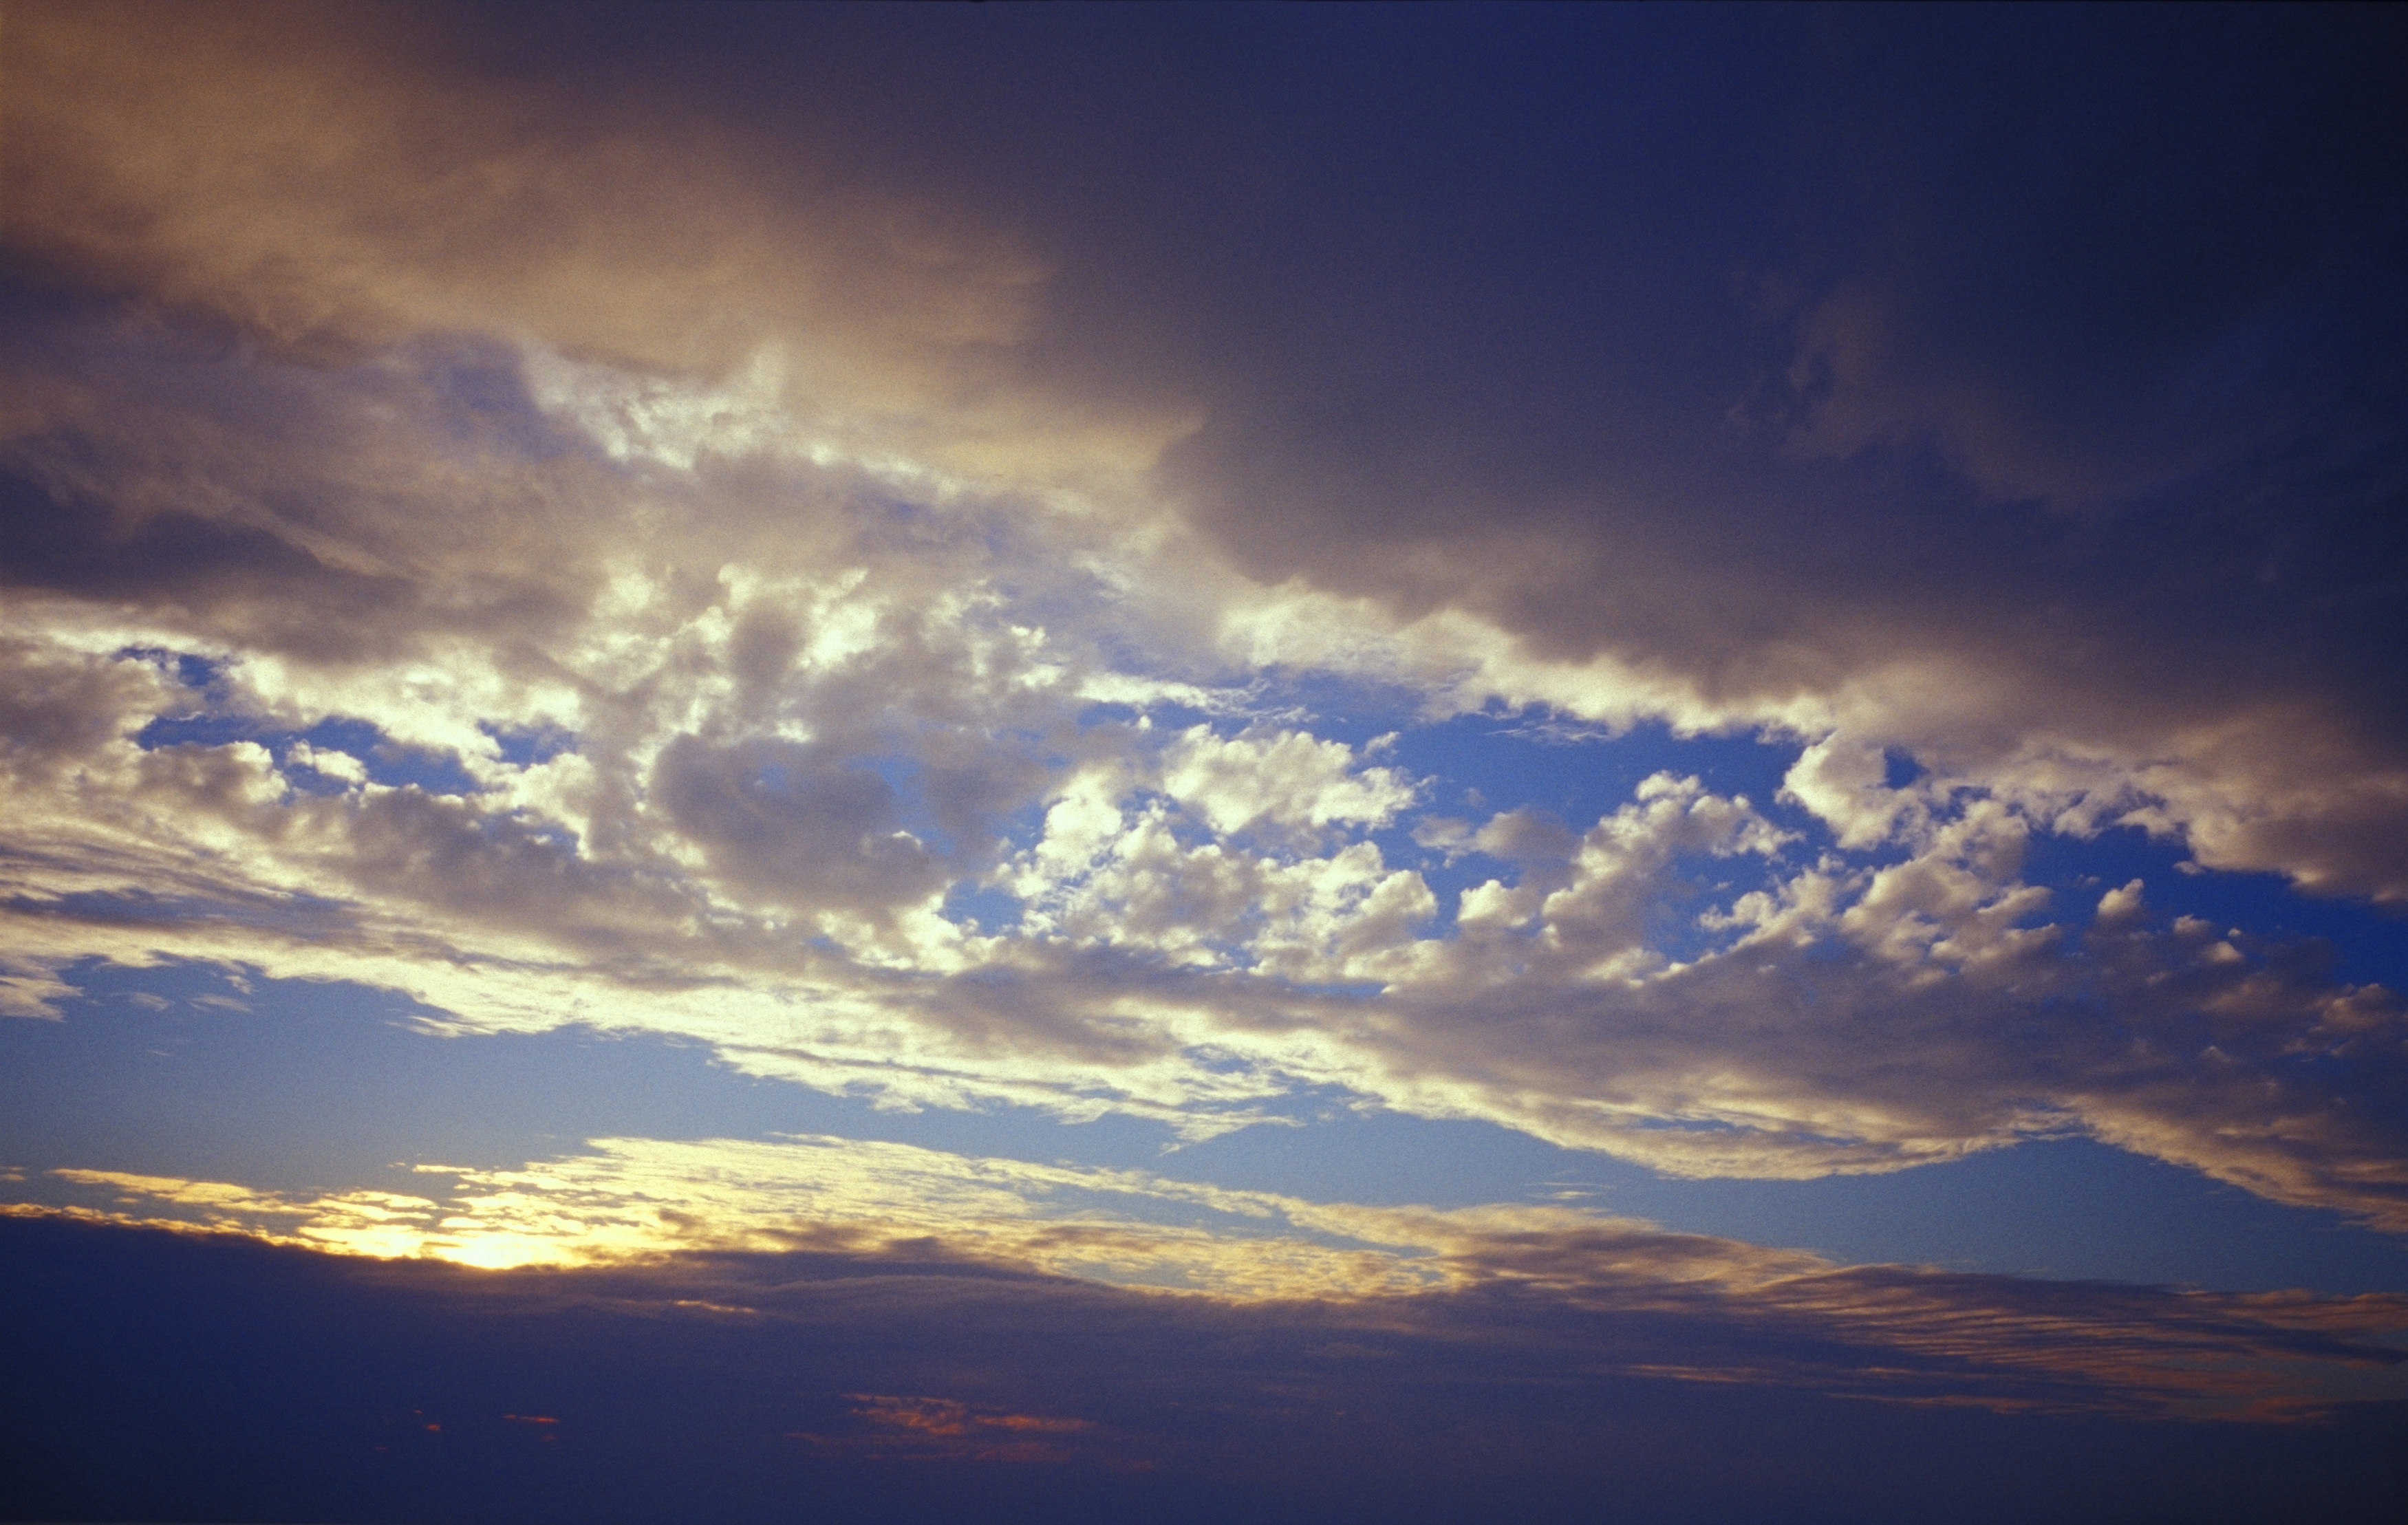 Free image of Beautiful and Dramatic Blue Sky at Sunset